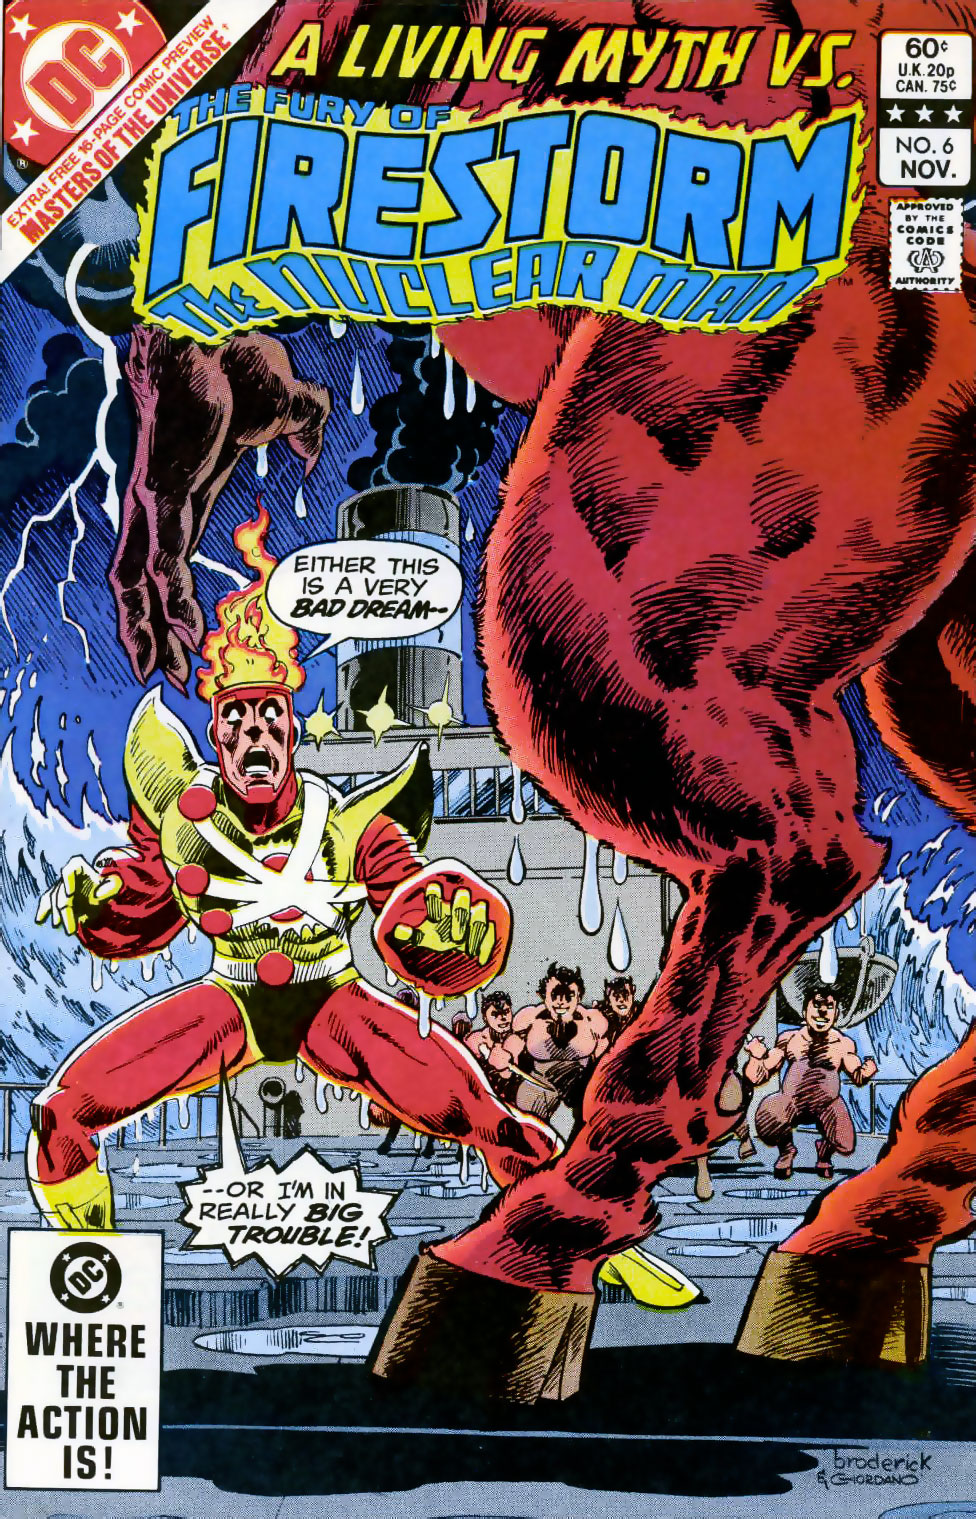 Fury of Firestorm The Nuclear Man #6 cover by Pat Broderick and Dick Giordano